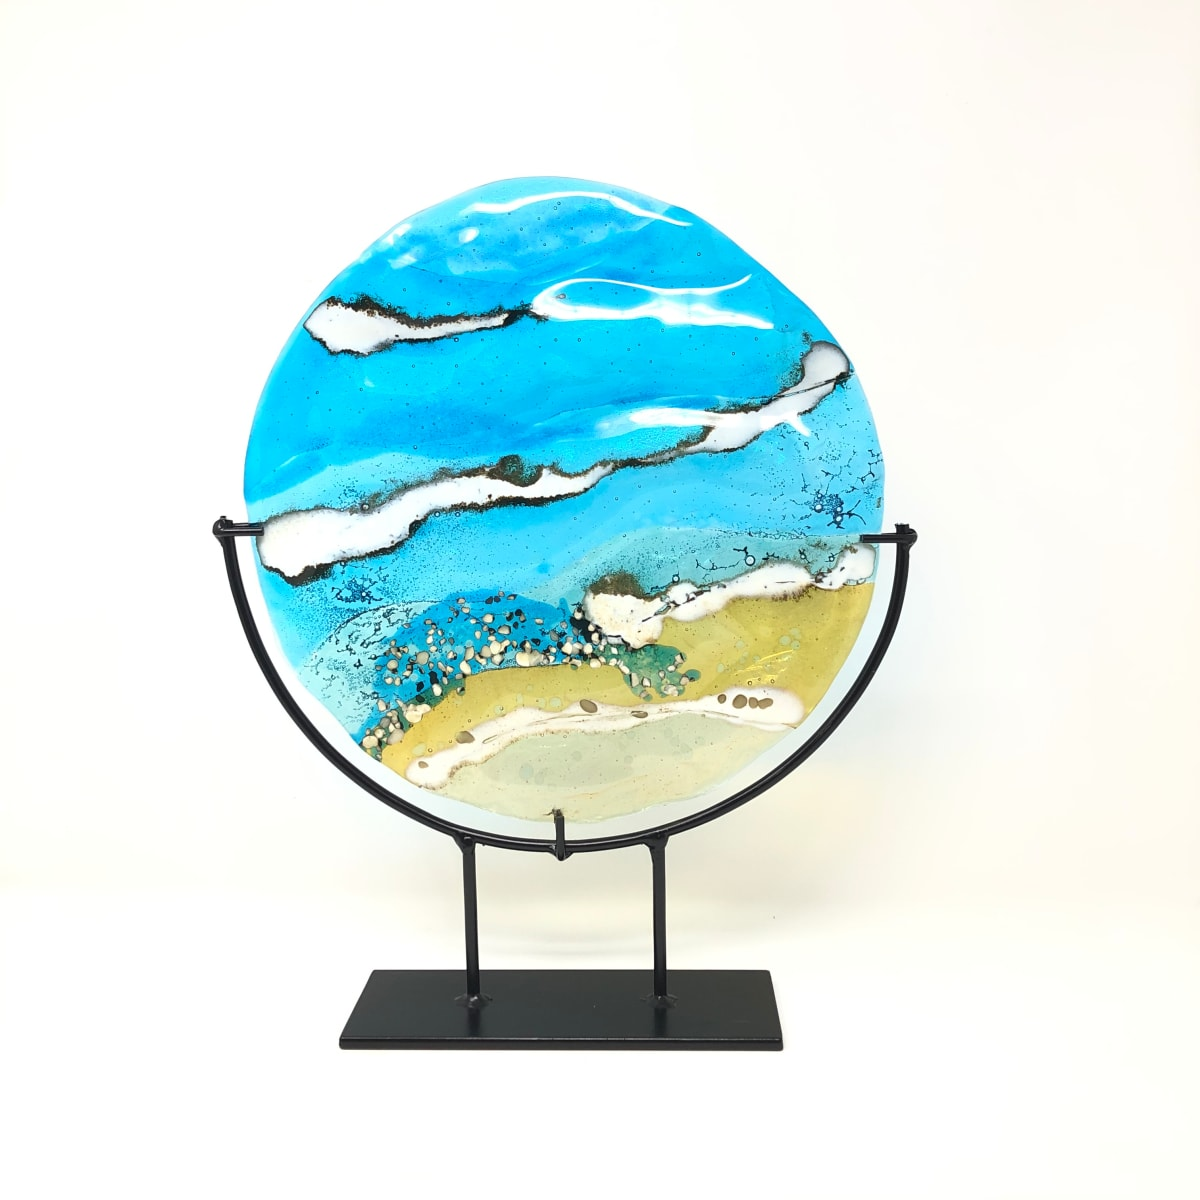 SHI321, Beach ripples in metal stand by Hilary Shields